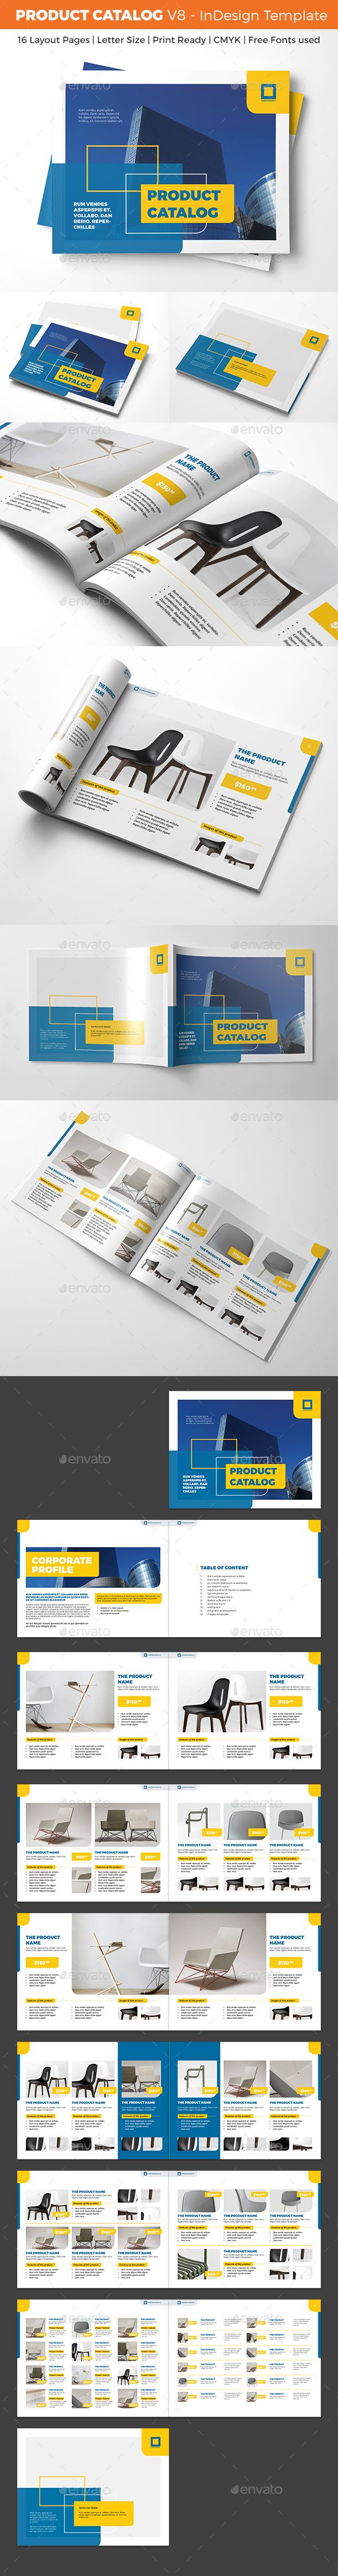 Product Catalog Template - V8 | Catálogo, Diseño editorial y Diseño ...